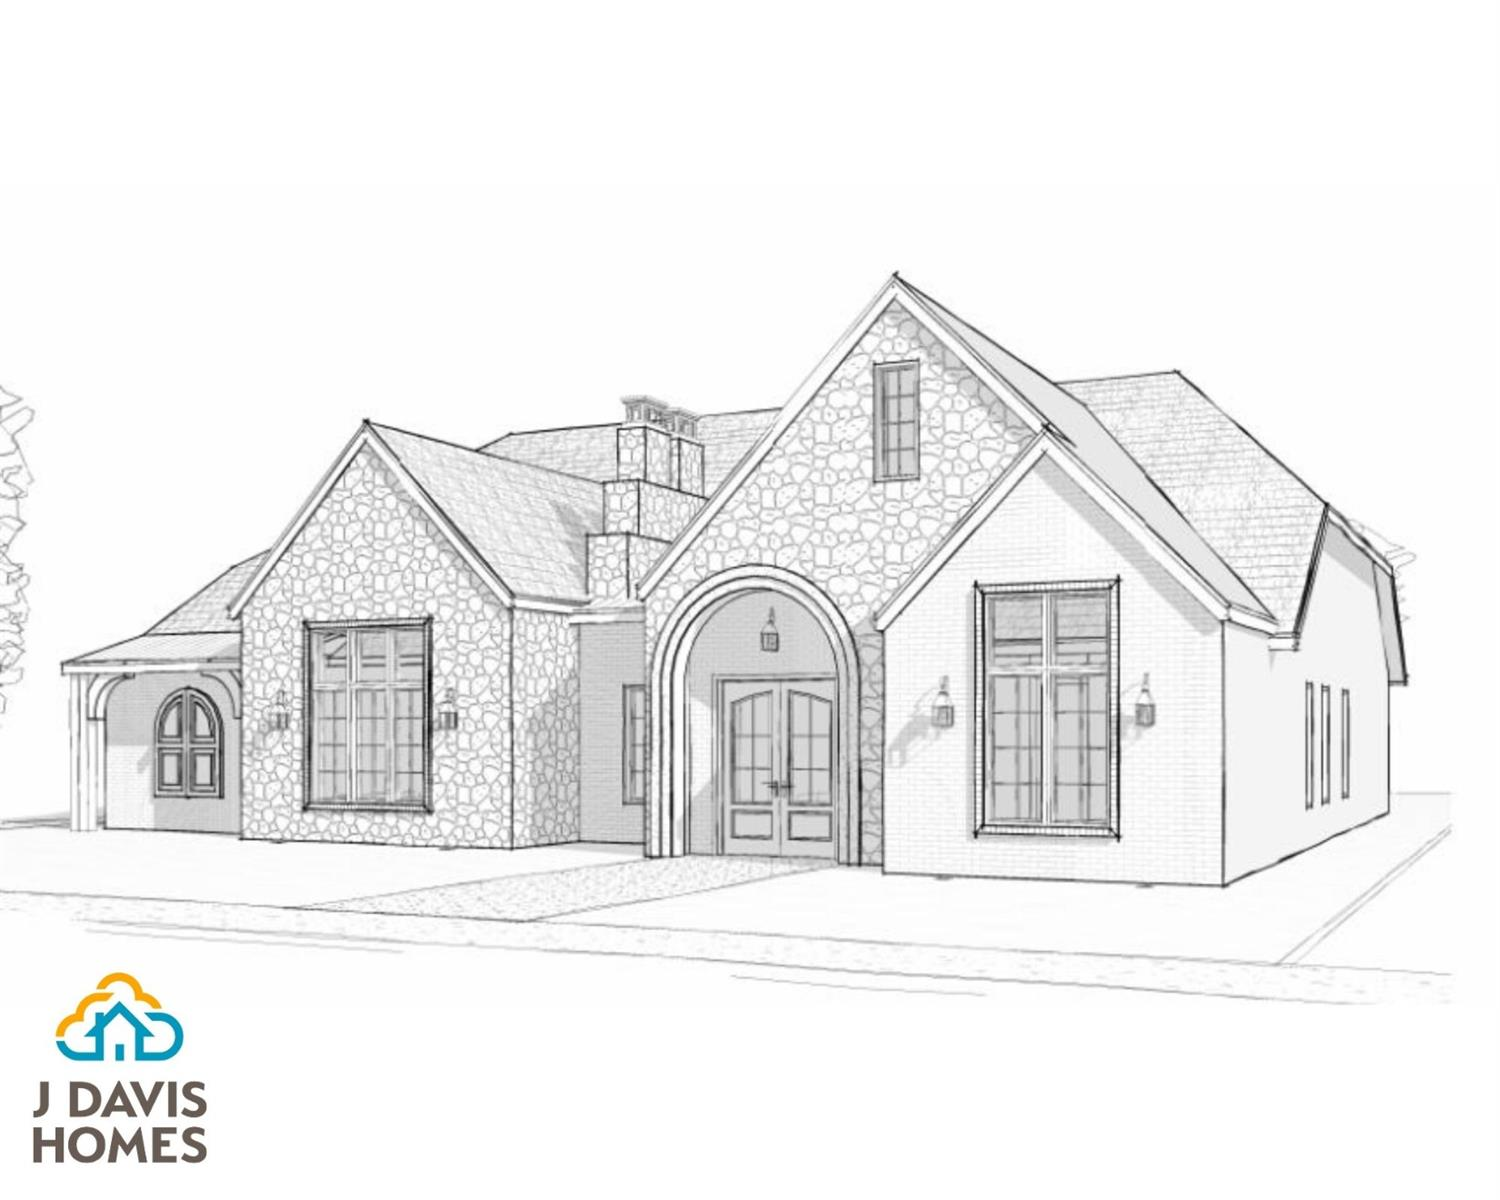 New construction from J Davis Homes in The Estates at Vintage. 4 Bed, 3 bath, 3 car garage (2 attached and 1 detached), plus a large media room that would also make a wonderful home office! Scheduled for completion by August 1, 2020.